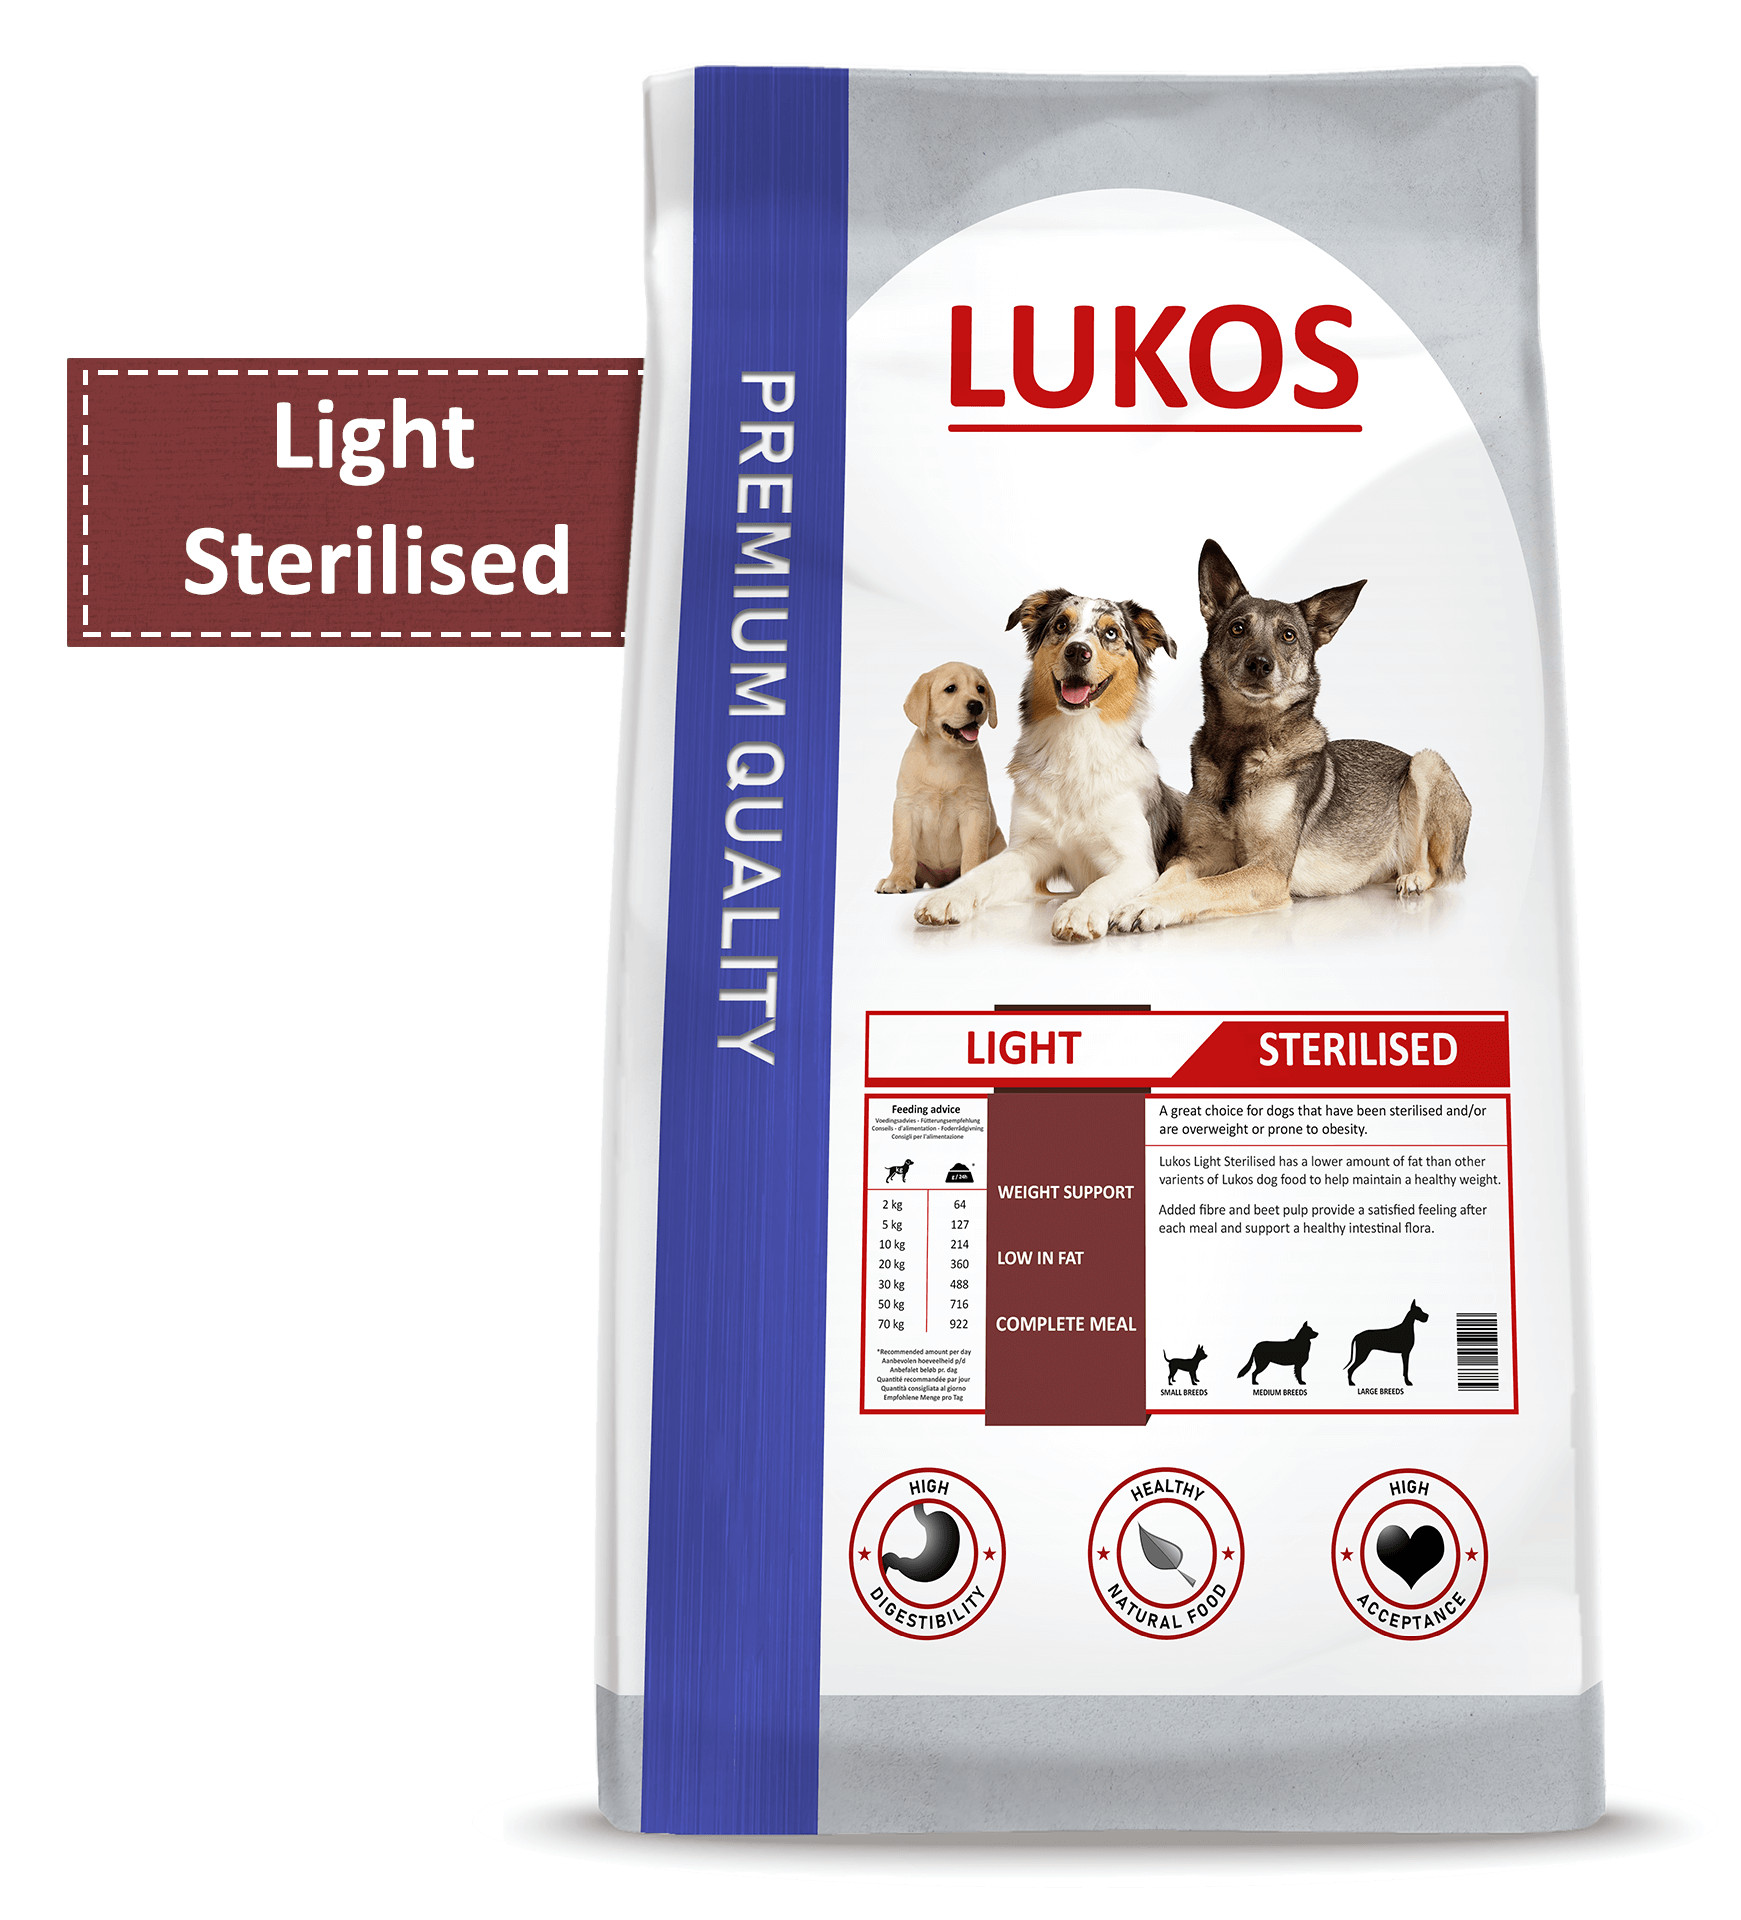 Lukos Sterilised Light